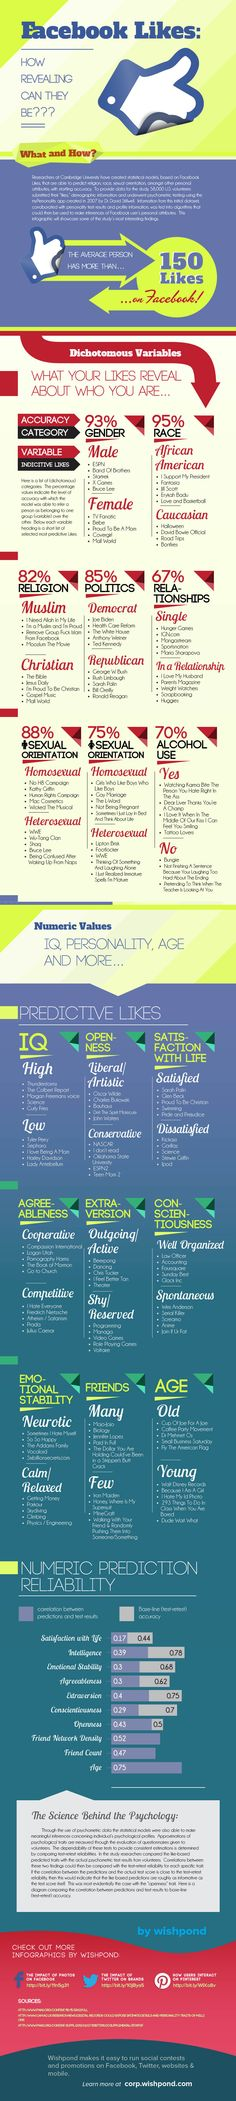 #INFOGRAPHIC -- What #Facebook Likes say are YOU!